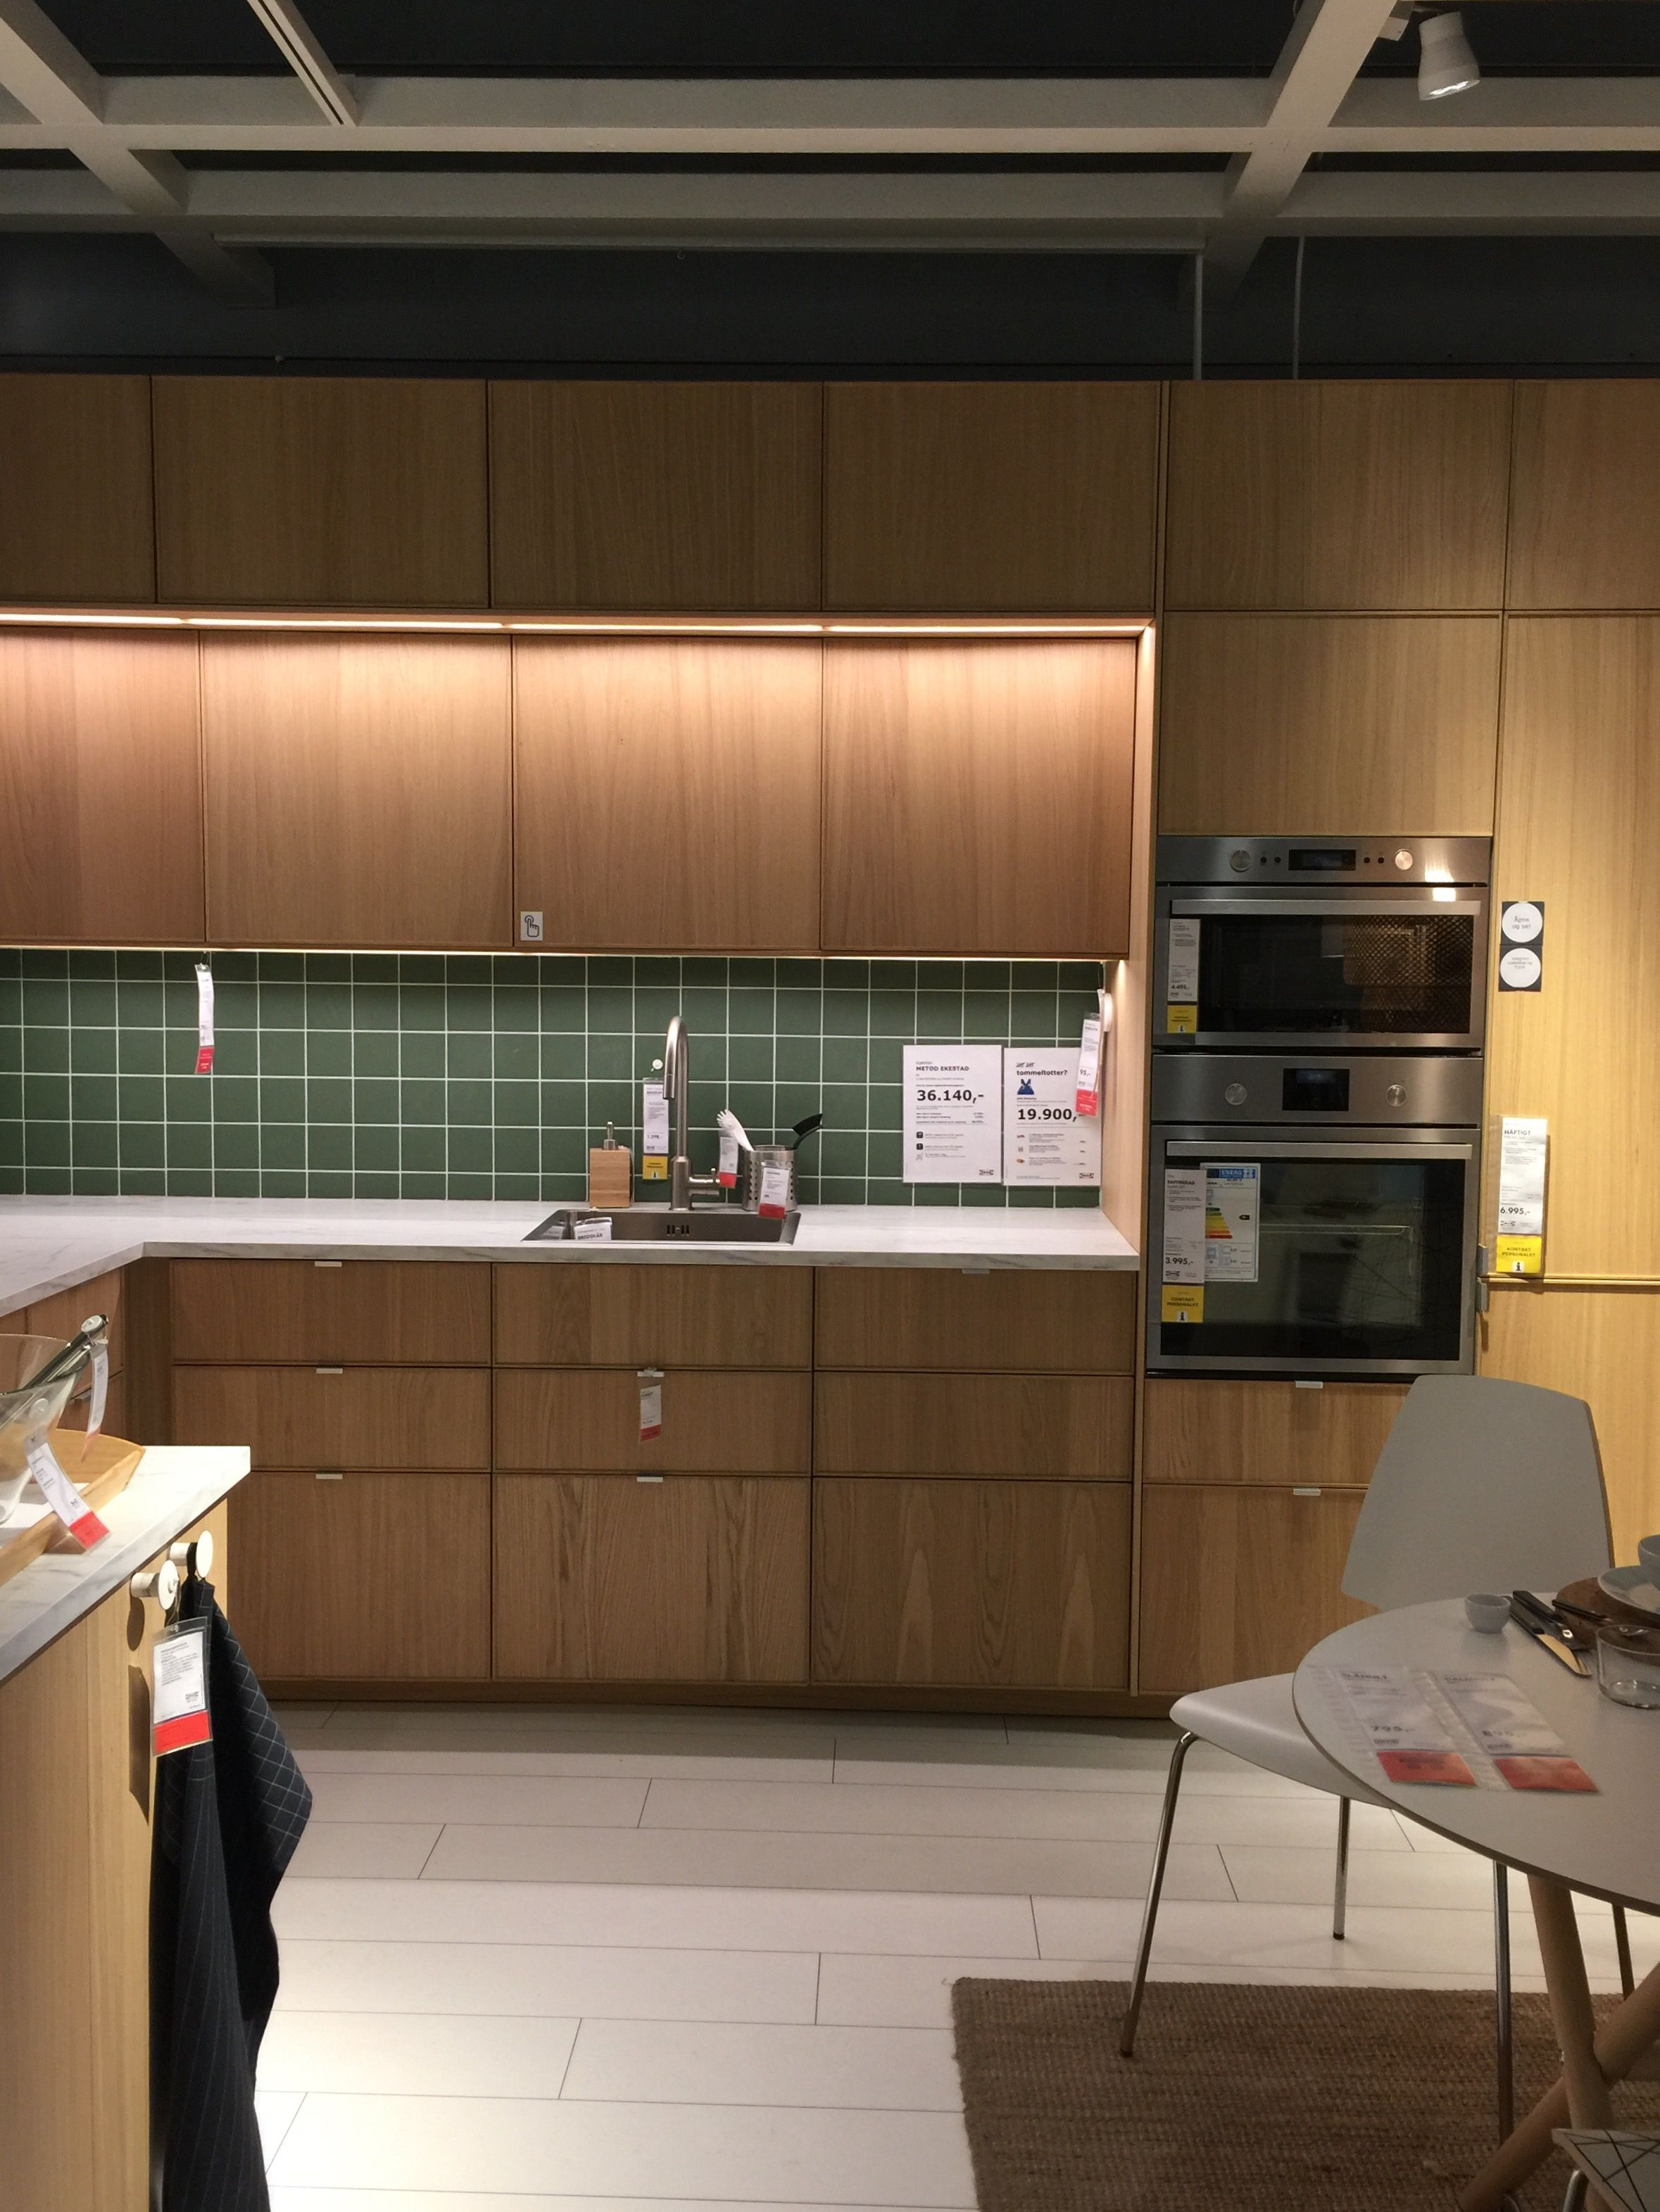 IKEA Metod Ekestad | hh | Pinterest | Kitchens, Kitchen design and ...